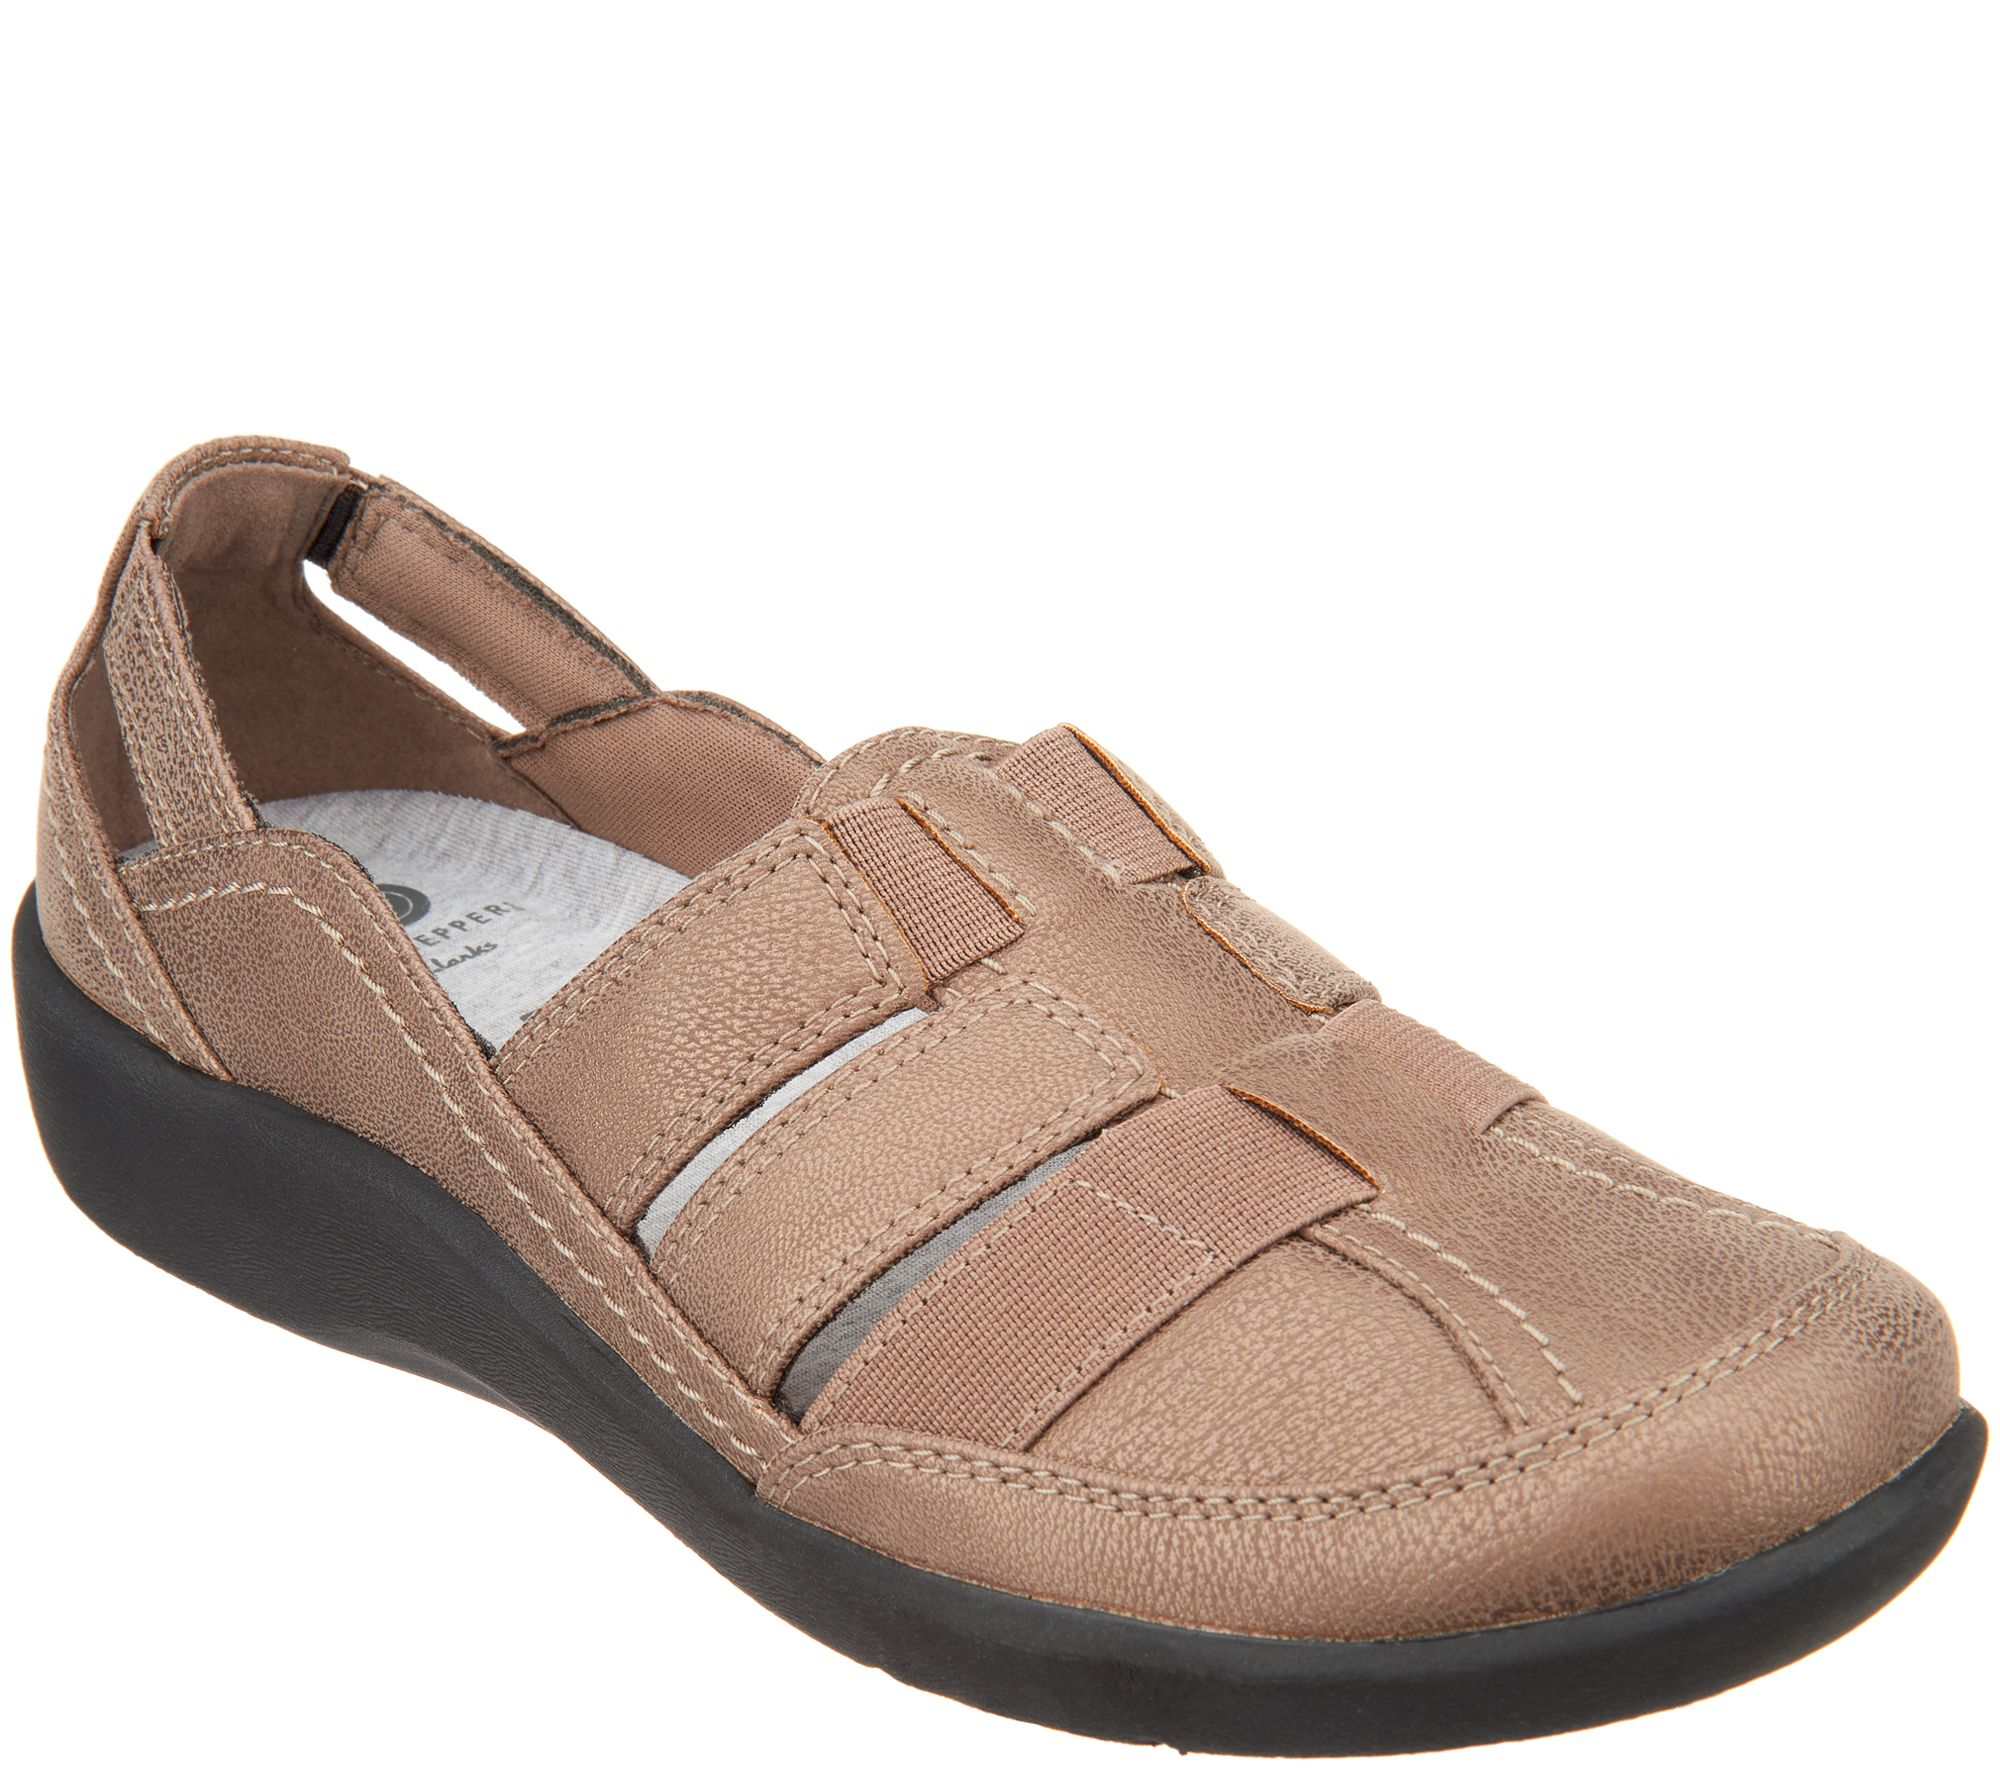 ebe36376e1a CLOUDSTEPPERS by Clarks Slip-on Shoes - Sillian Stork - Page 1 — QVC.com